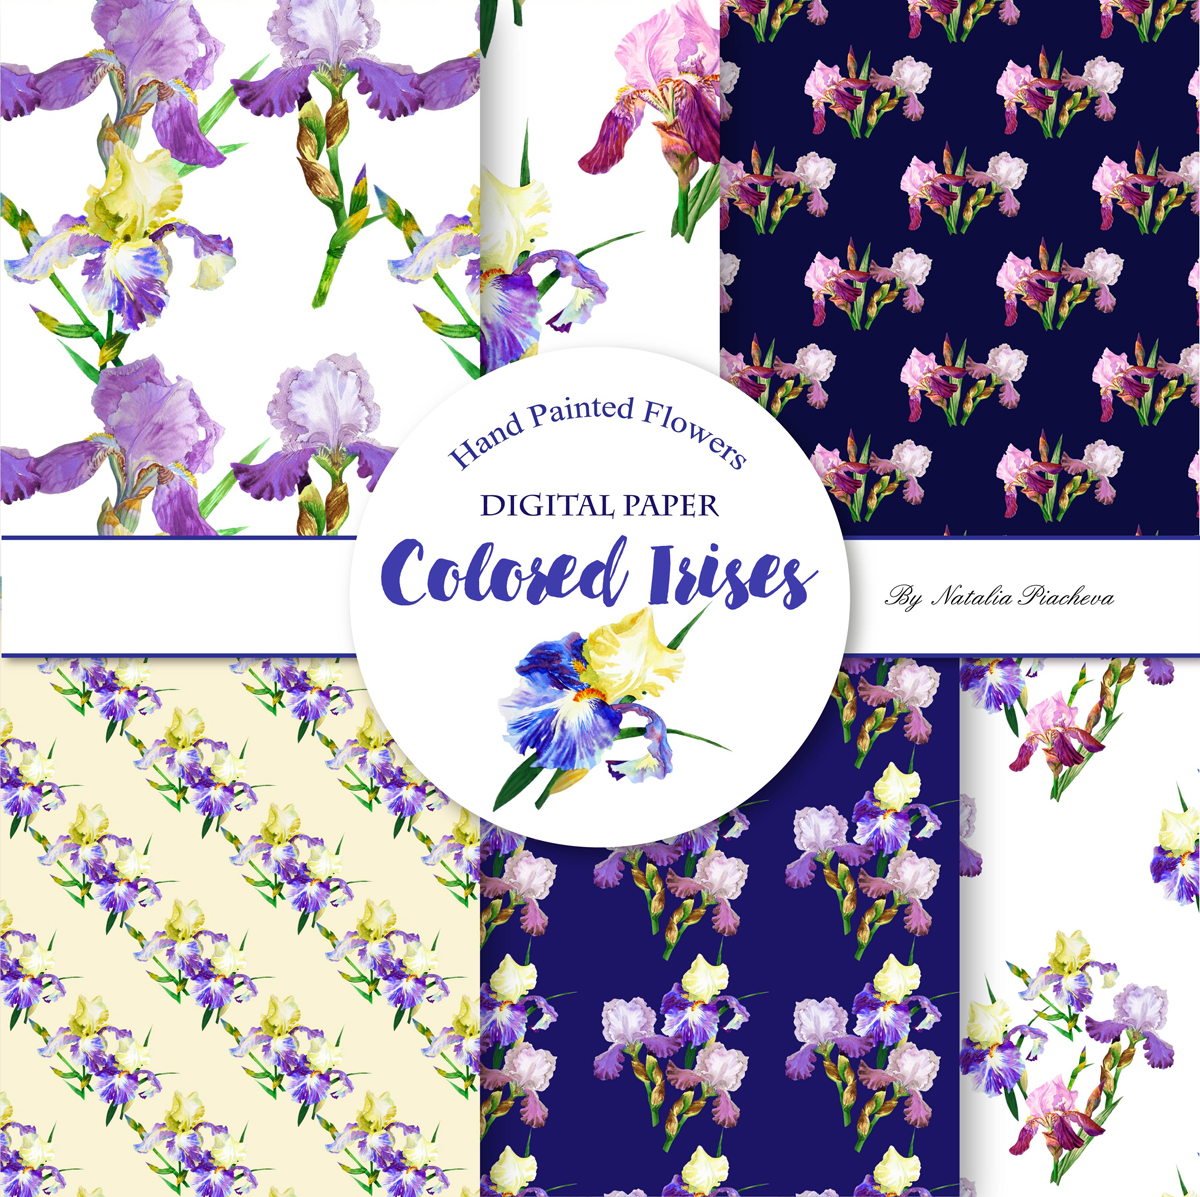 Digital Paper with Colored Irises example image 2